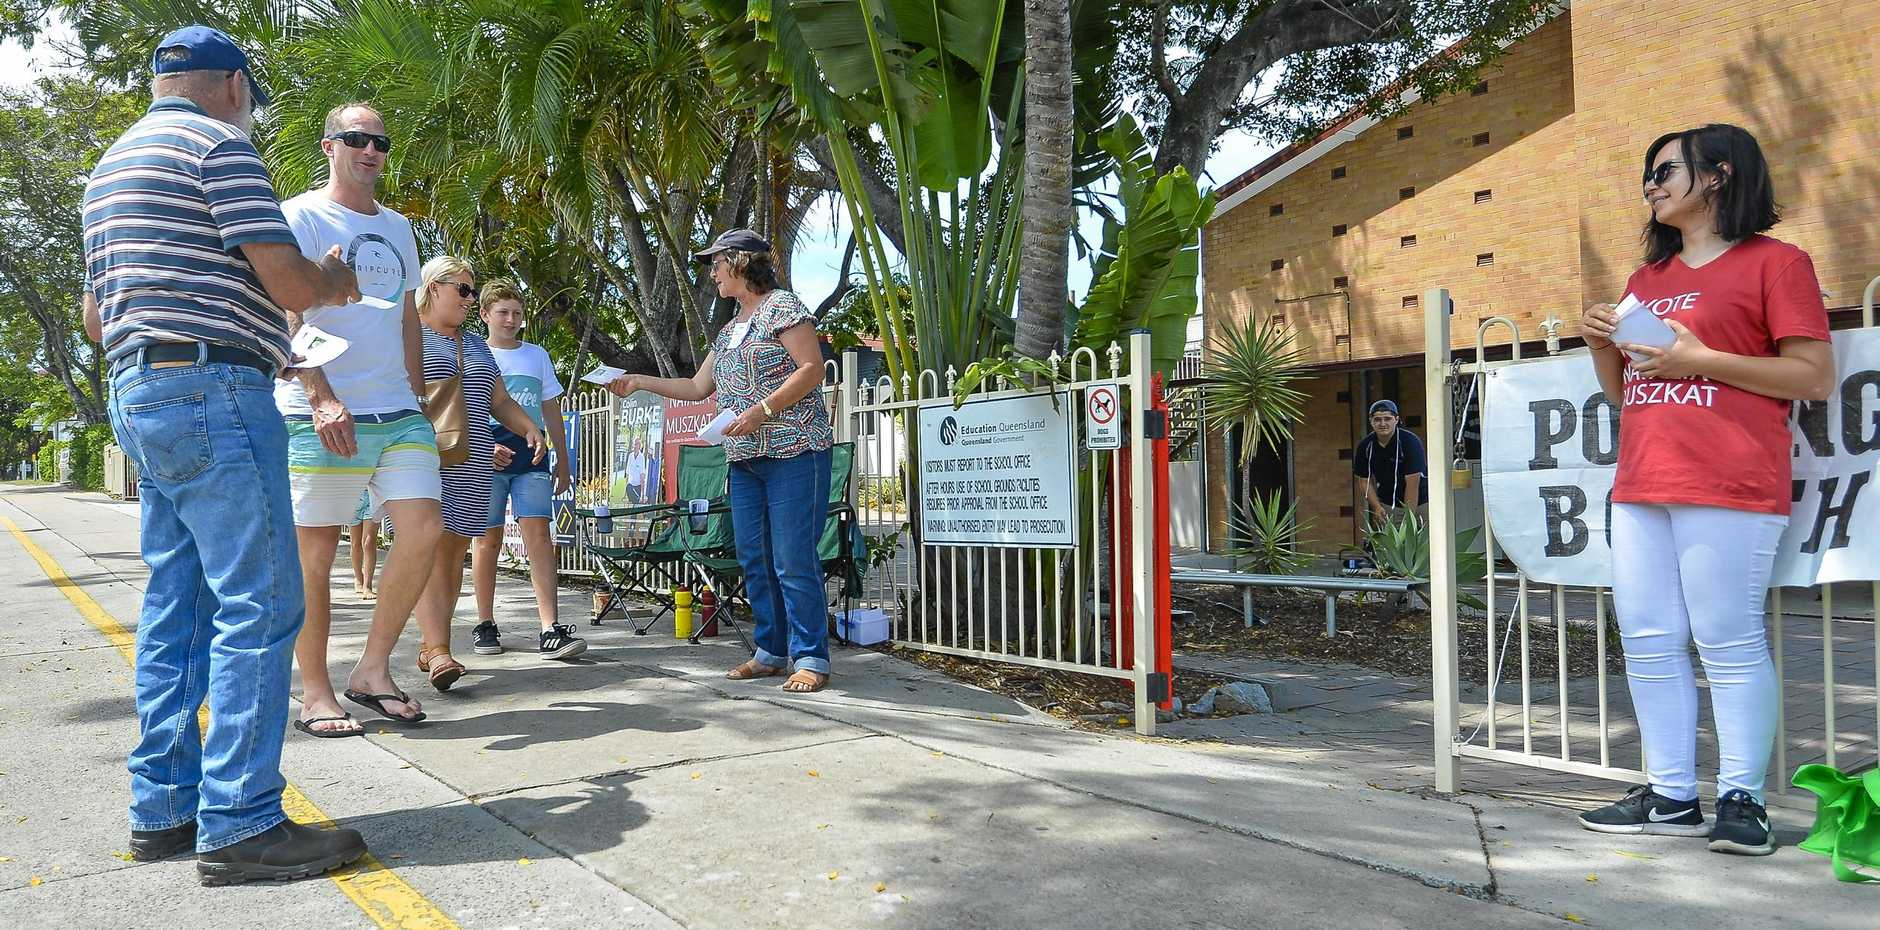 Voters attended polling booths around Gladstone as the Regional Council by election took place on November 17, 2018.